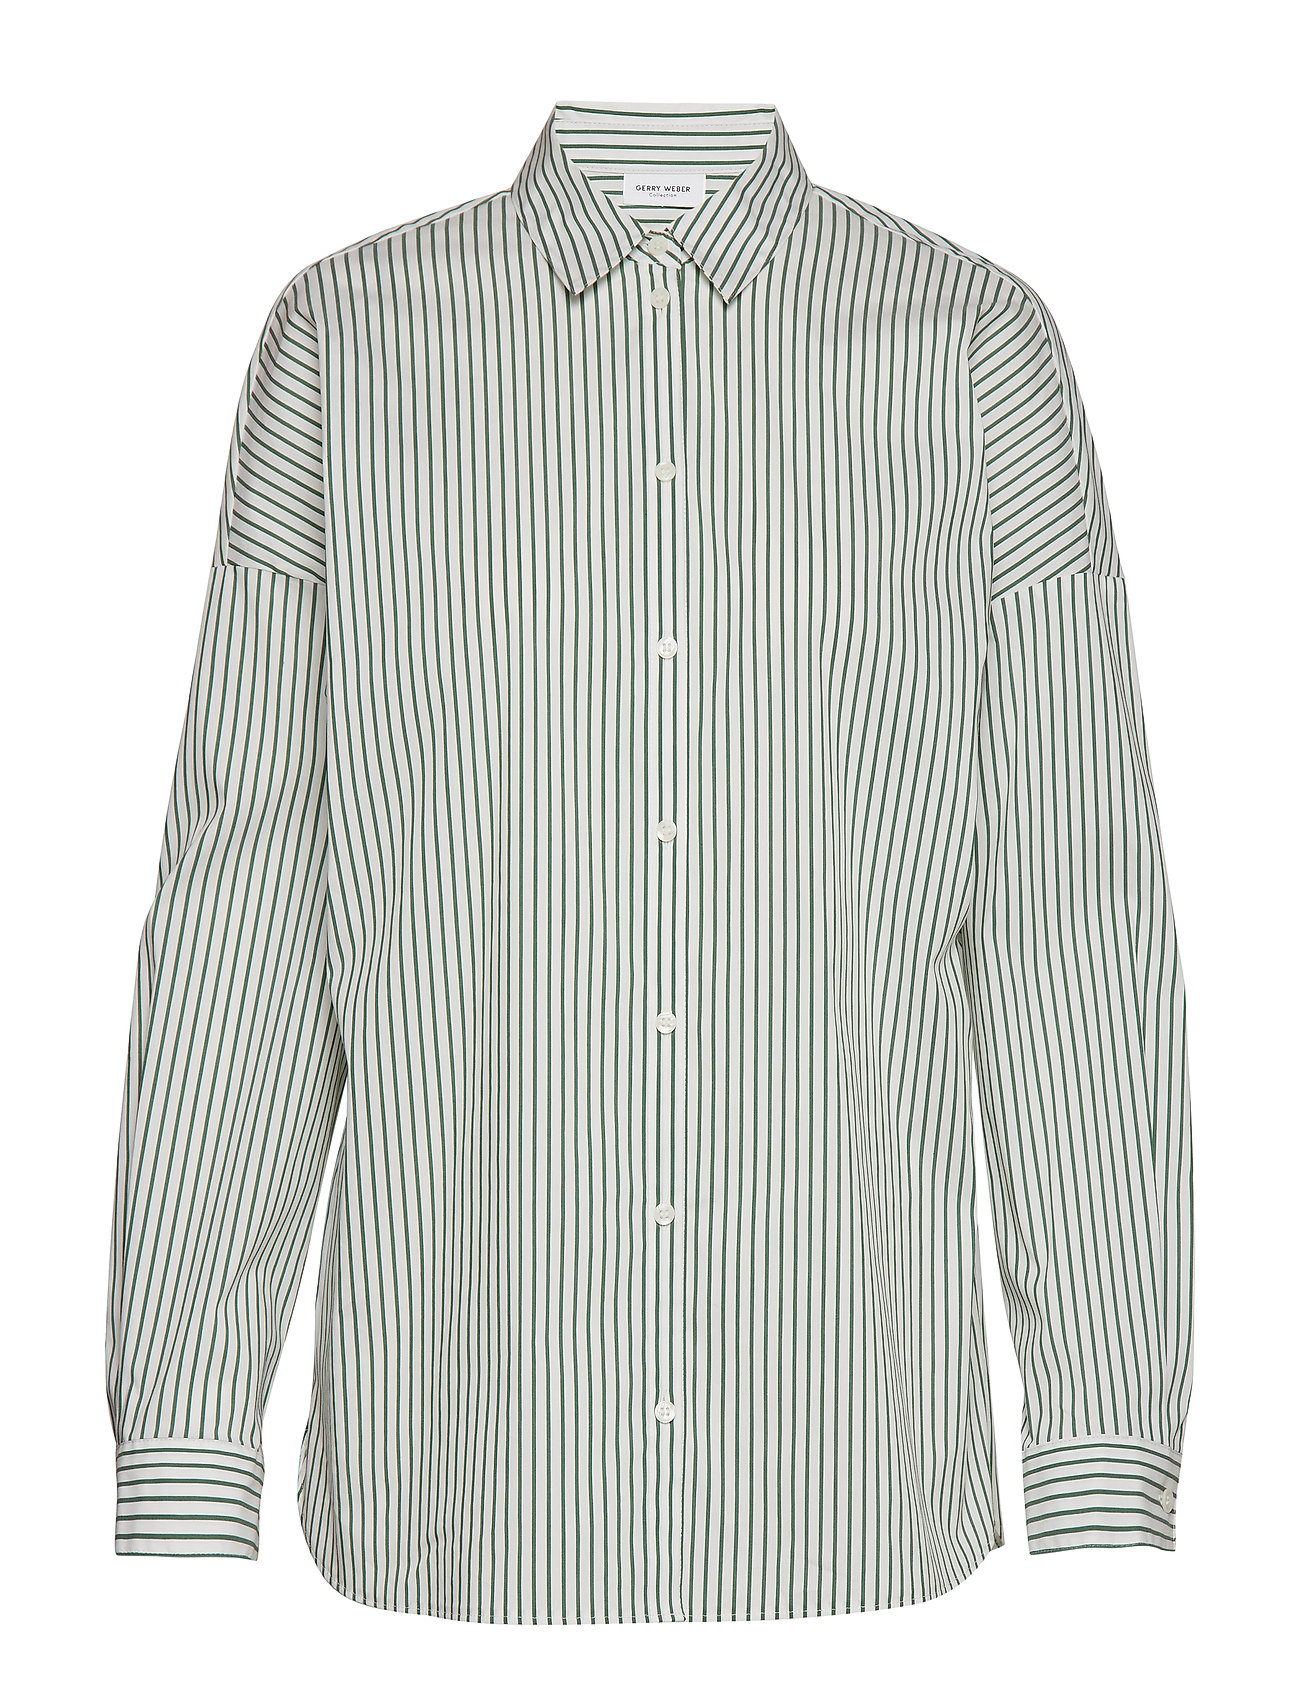 Gerry Weber BLOUSE LONG-SLEEVE - ECRU/WHITE/GREEN STRIPES